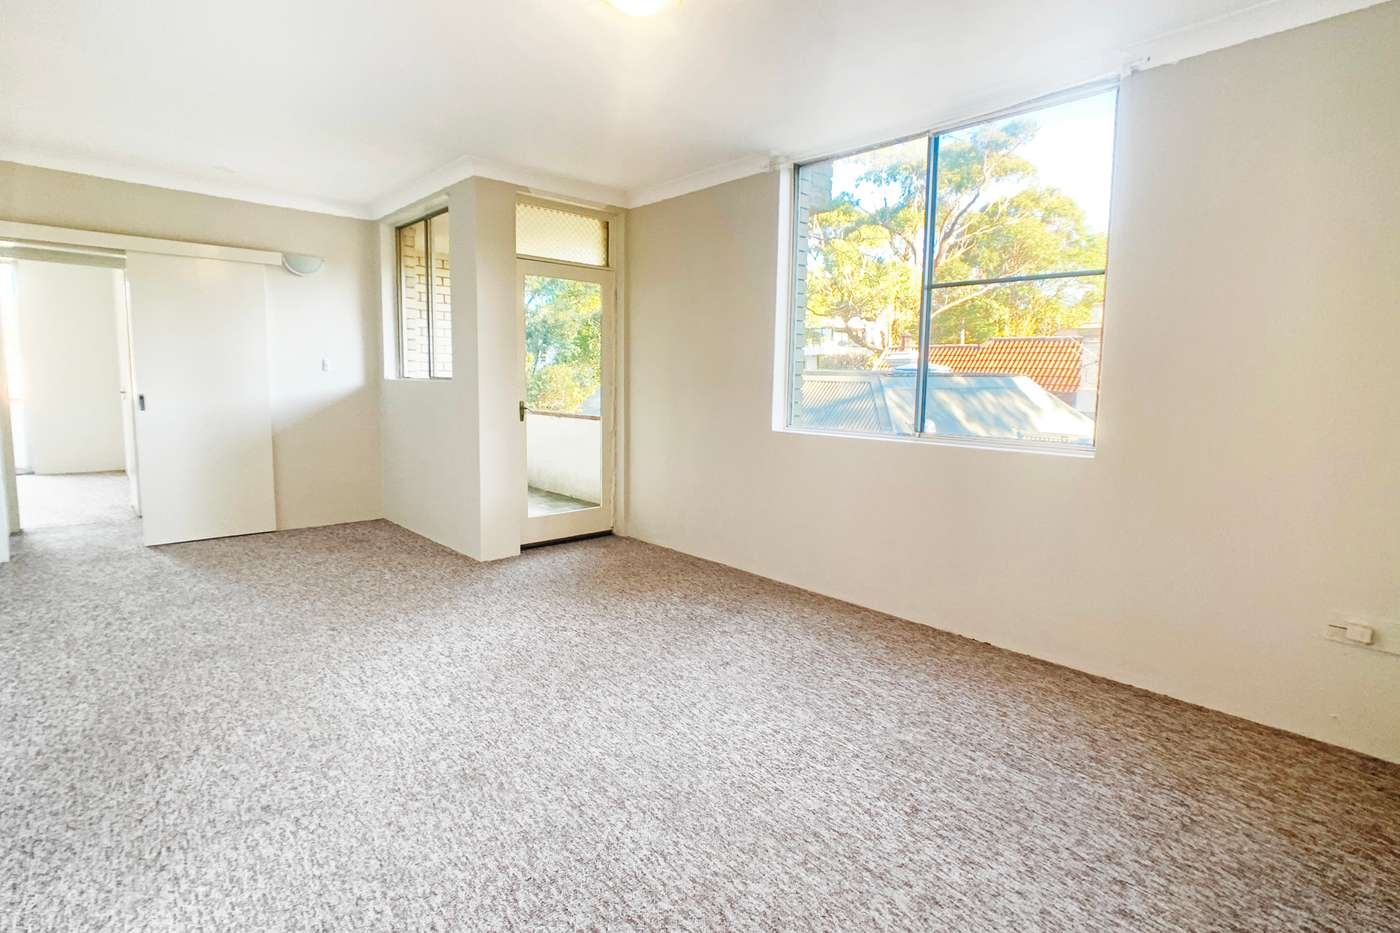 Main view of Homely apartment listing, 3/46 Evans Street, Bronte, NSW 2024